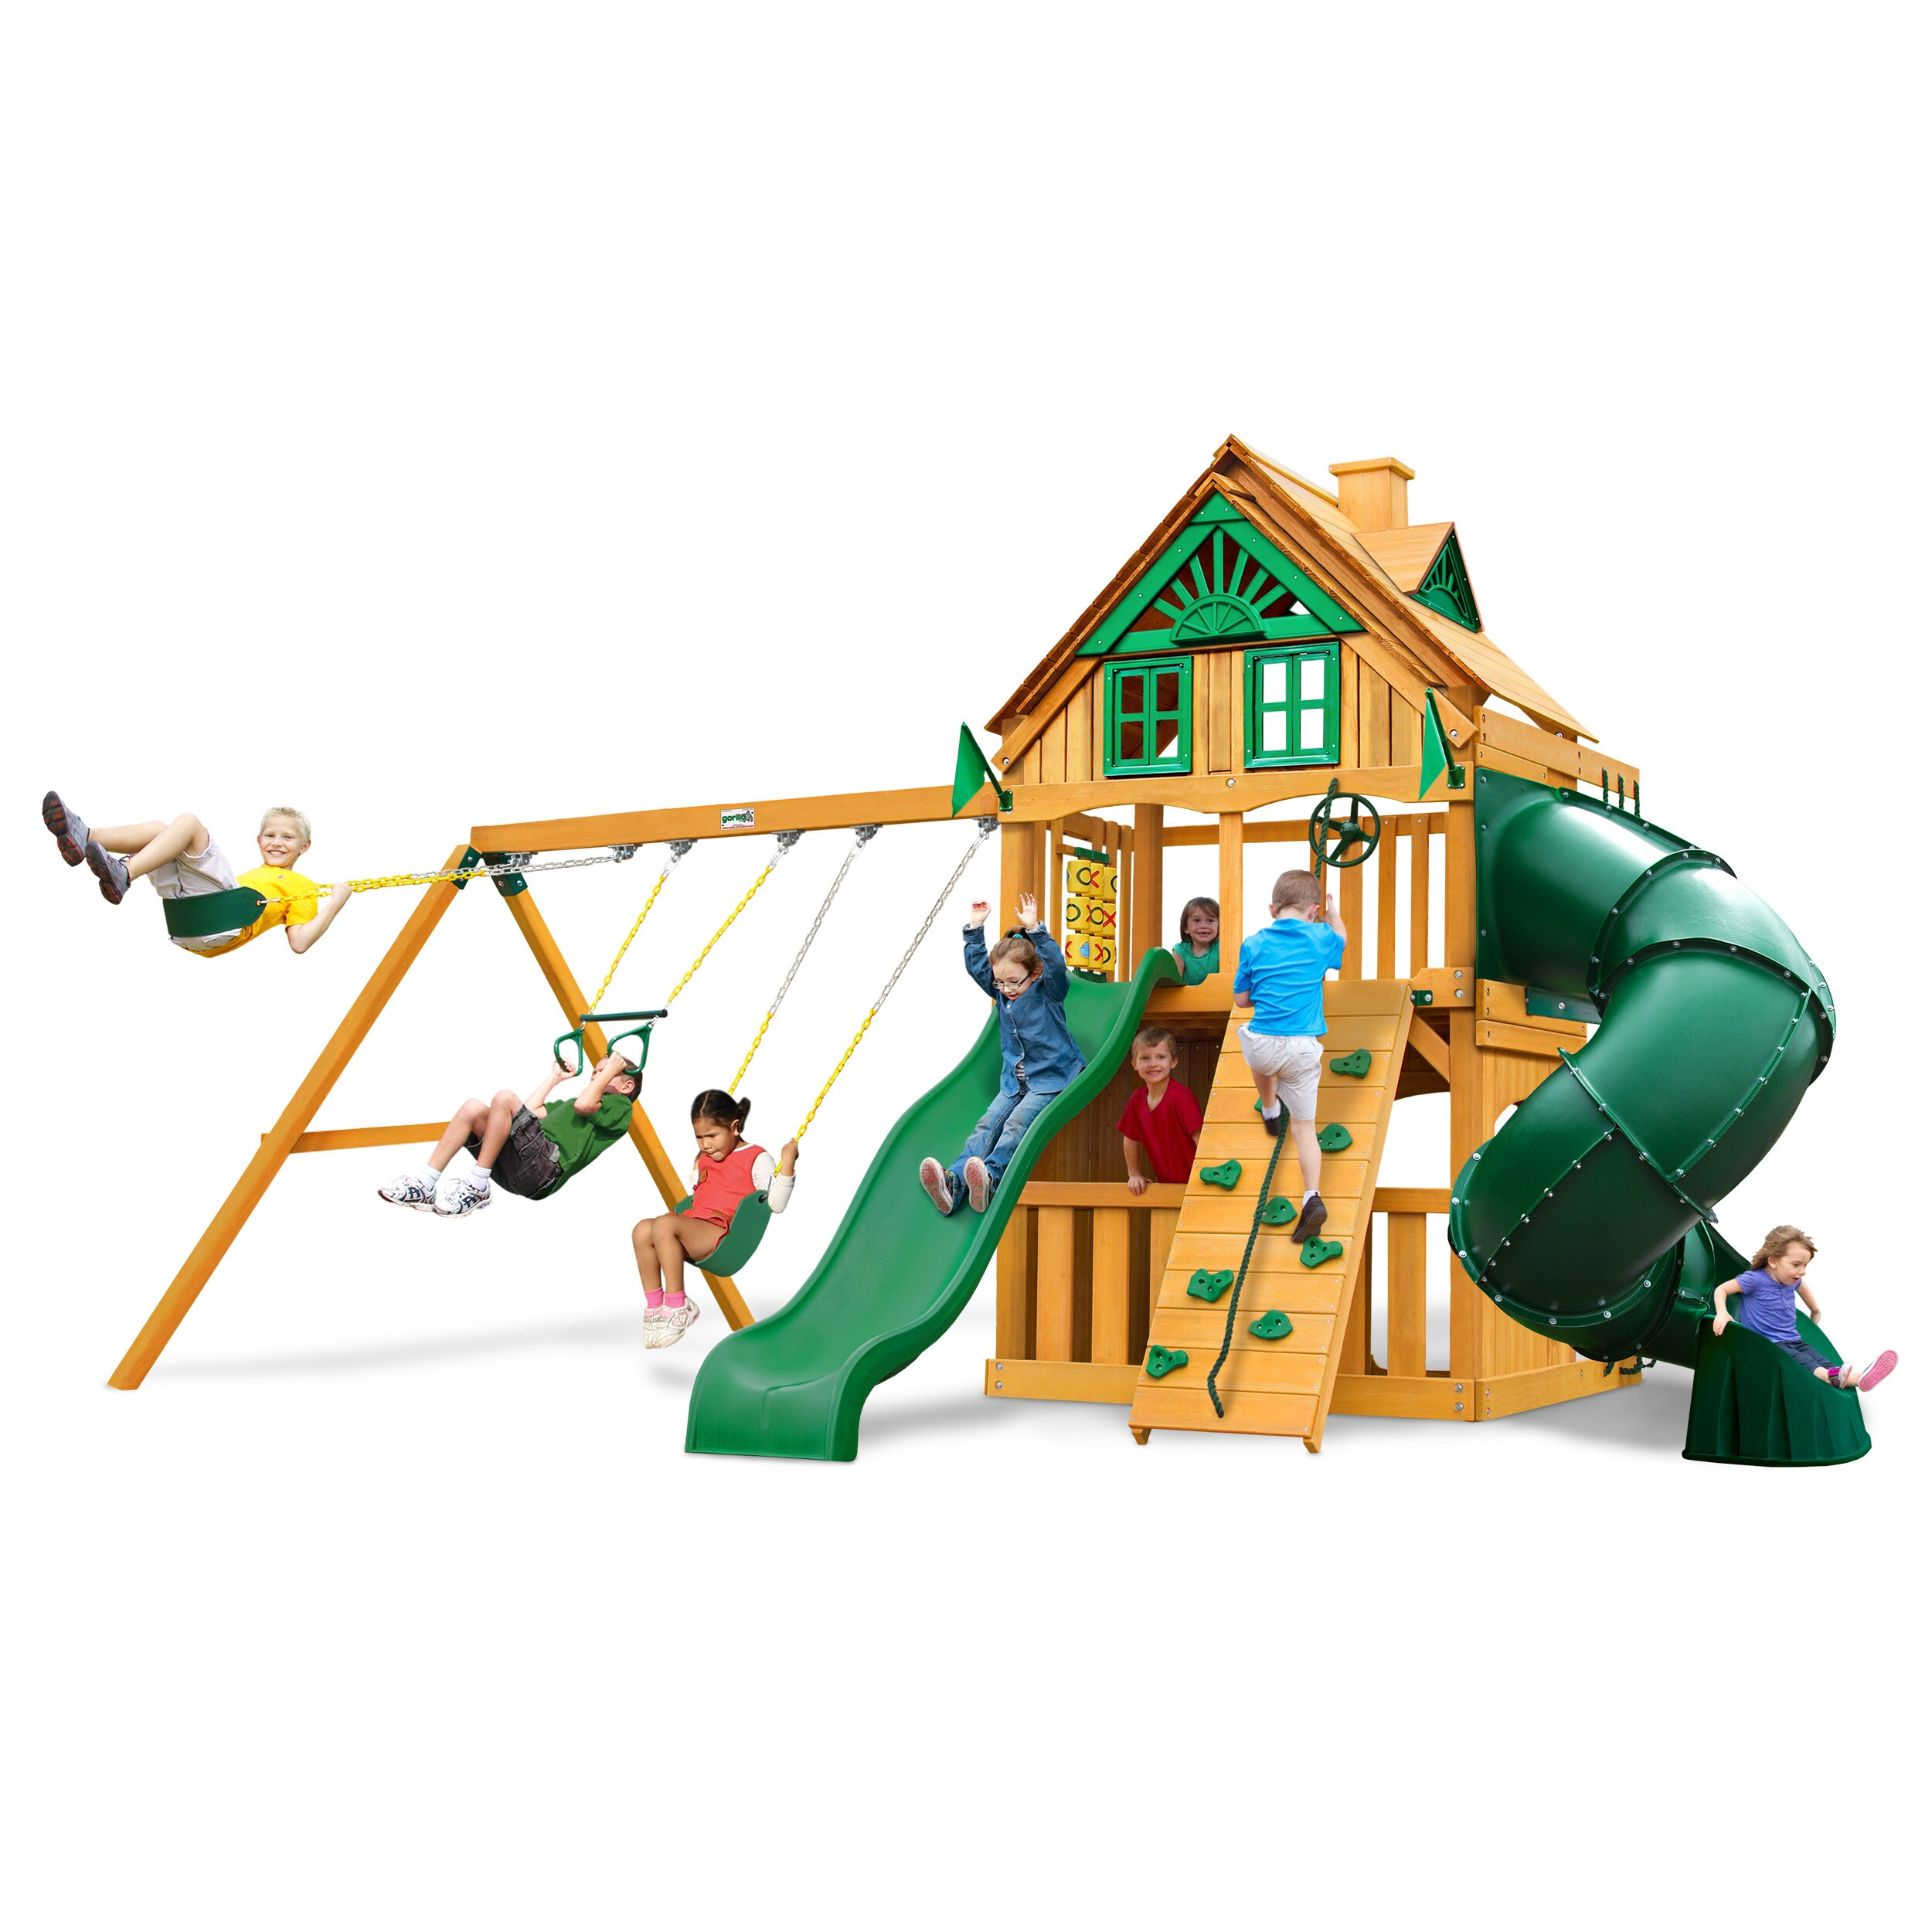 Gorilla Playsets Mountaineer Clubhouse Treehouse Swing Set with Amber Posts